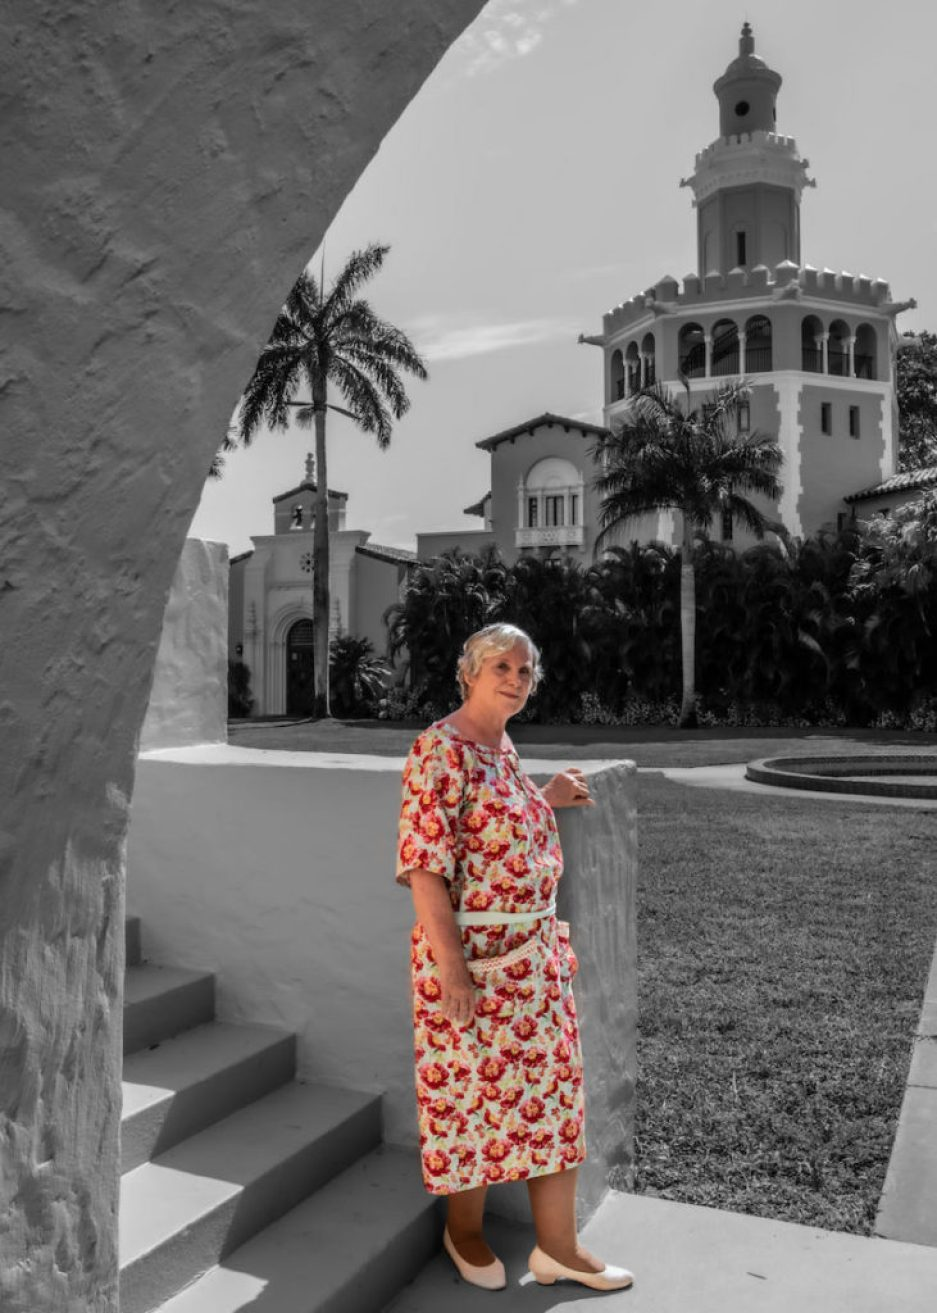 A black and white photo of a woman outside a Spanish-style building tower, where the woman and her flowery dress have been colorized.